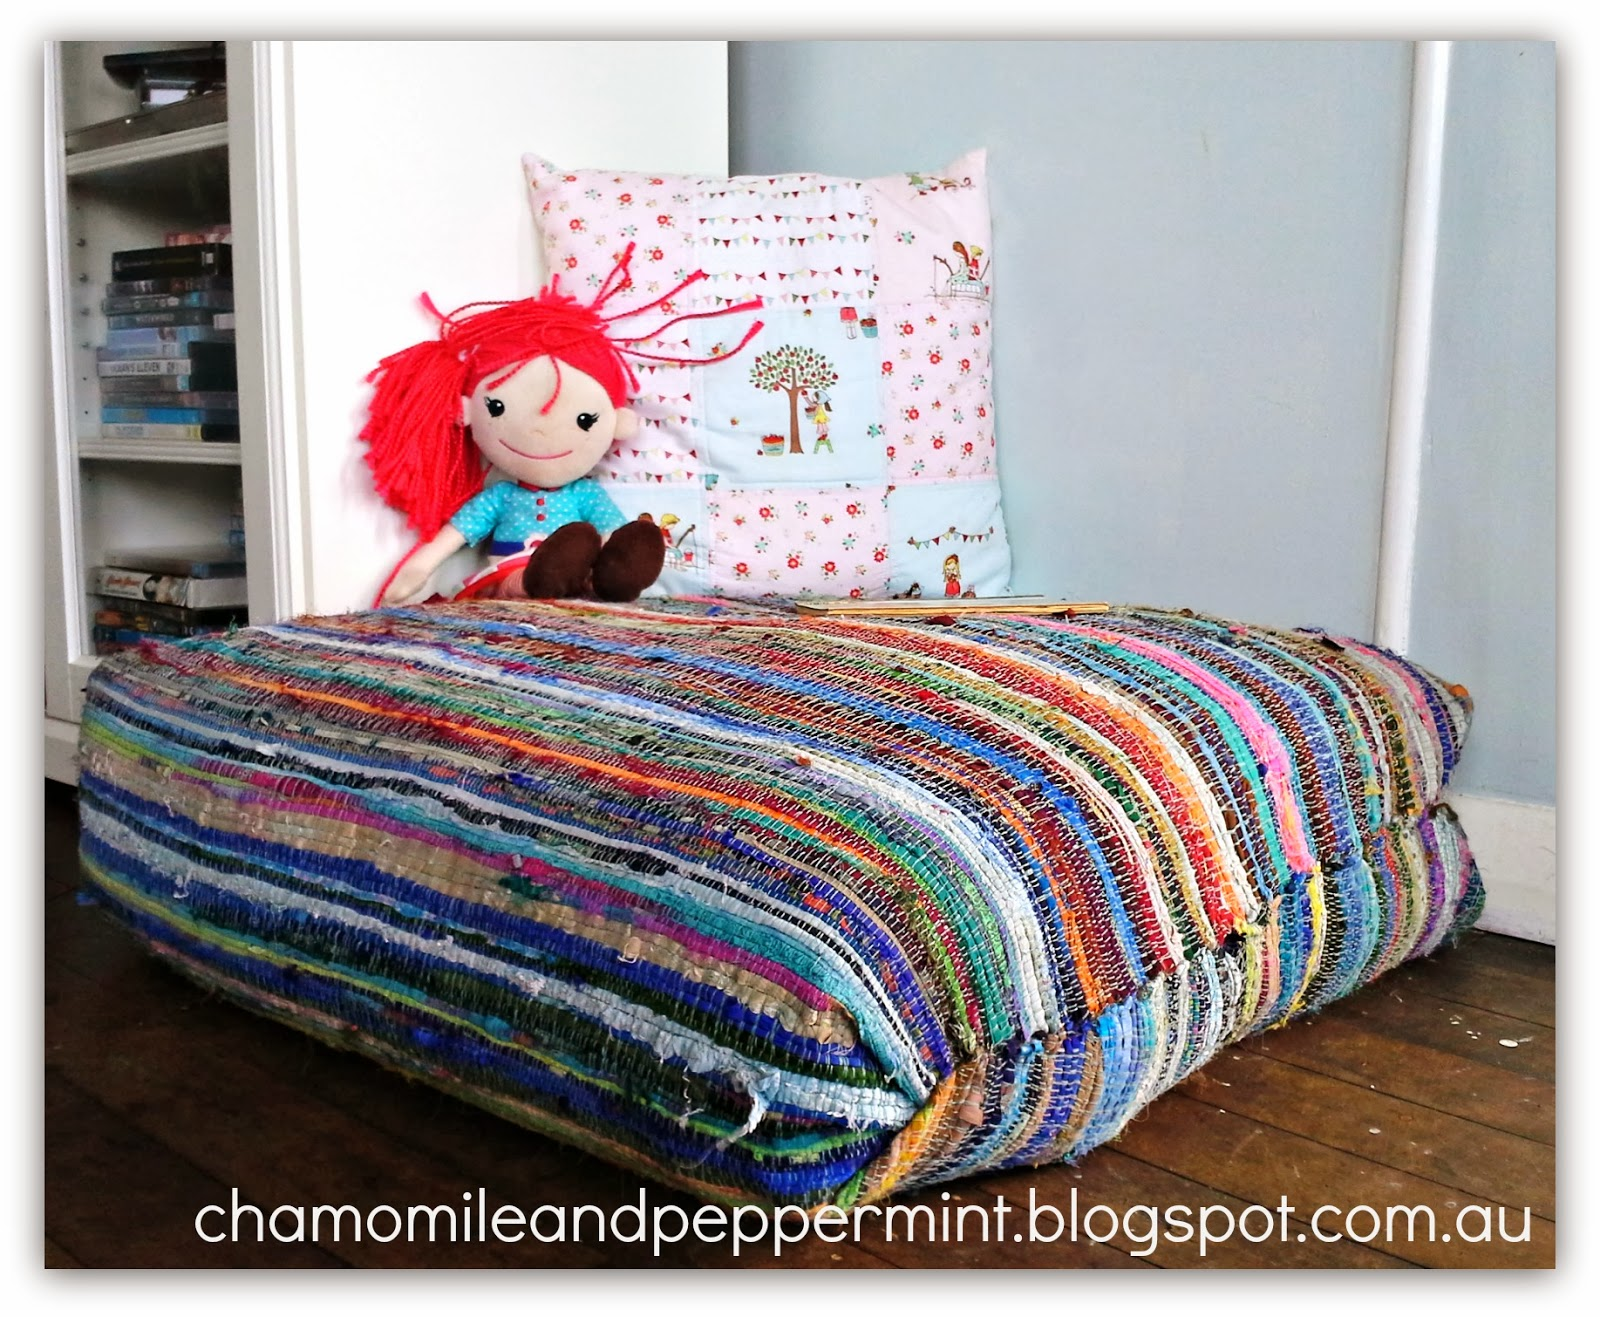 Chamomile And Peppermint Blog Something New From Old Diy Giant Rag Rug Floor